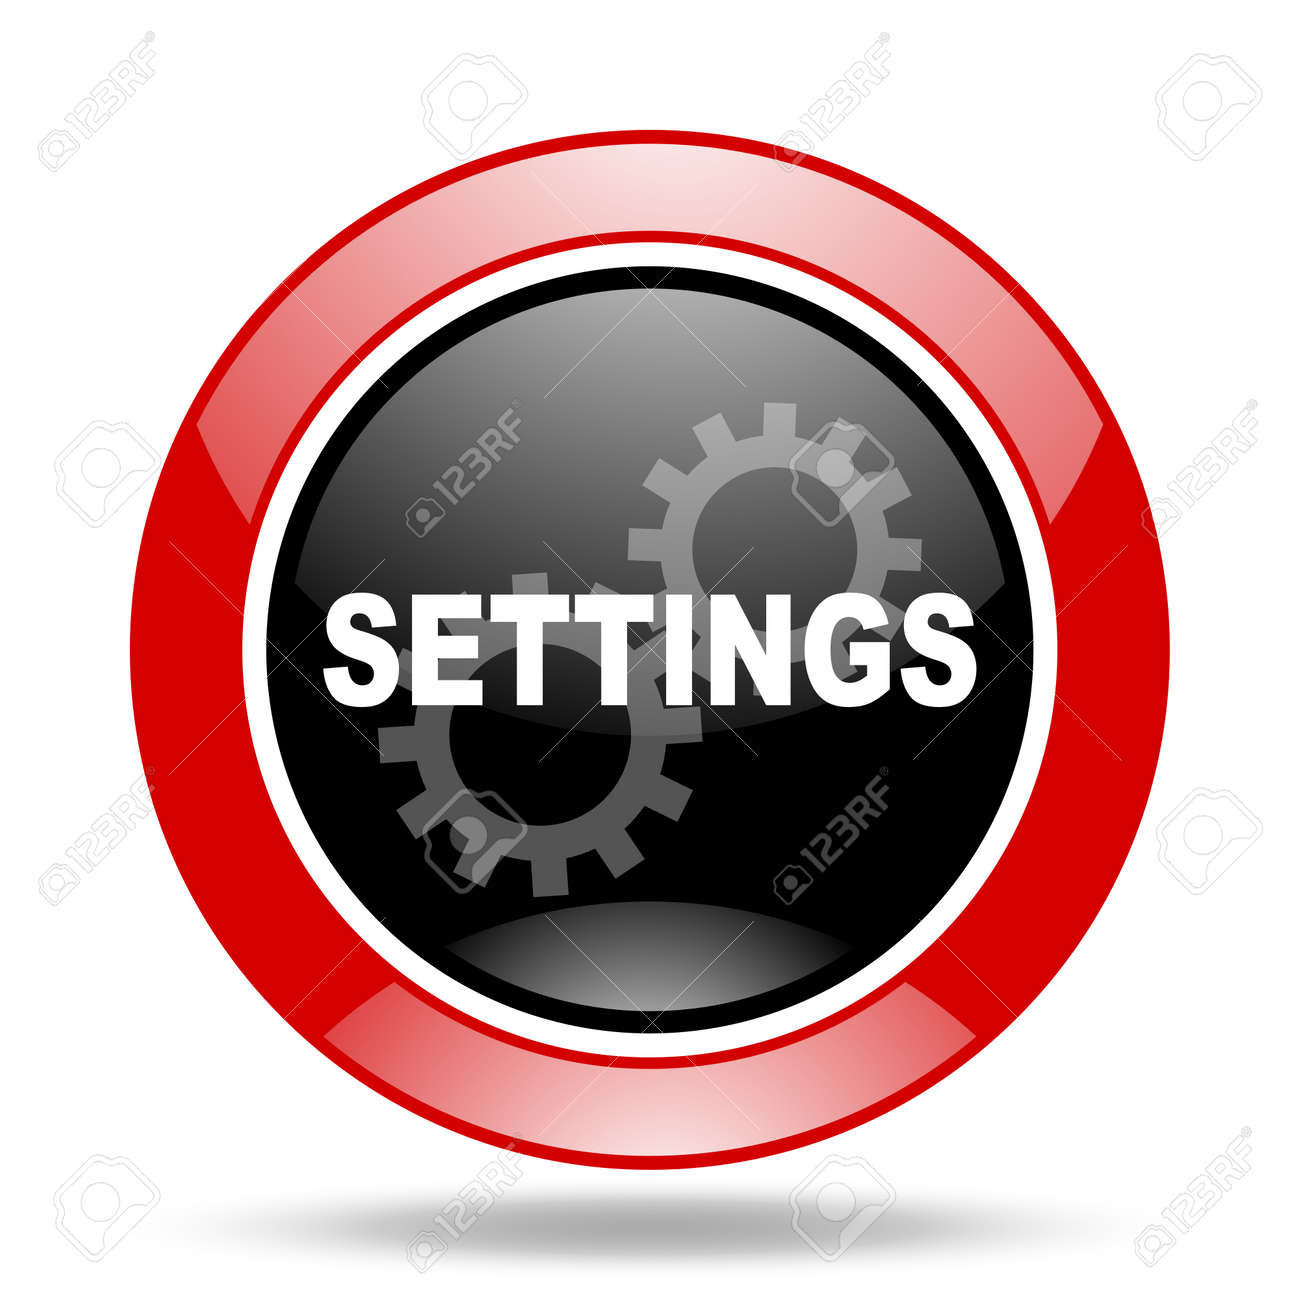 Settings Round Glossy Red And Black Web Icon Stock Photo Picture And Royalty Free Image Image 61715135